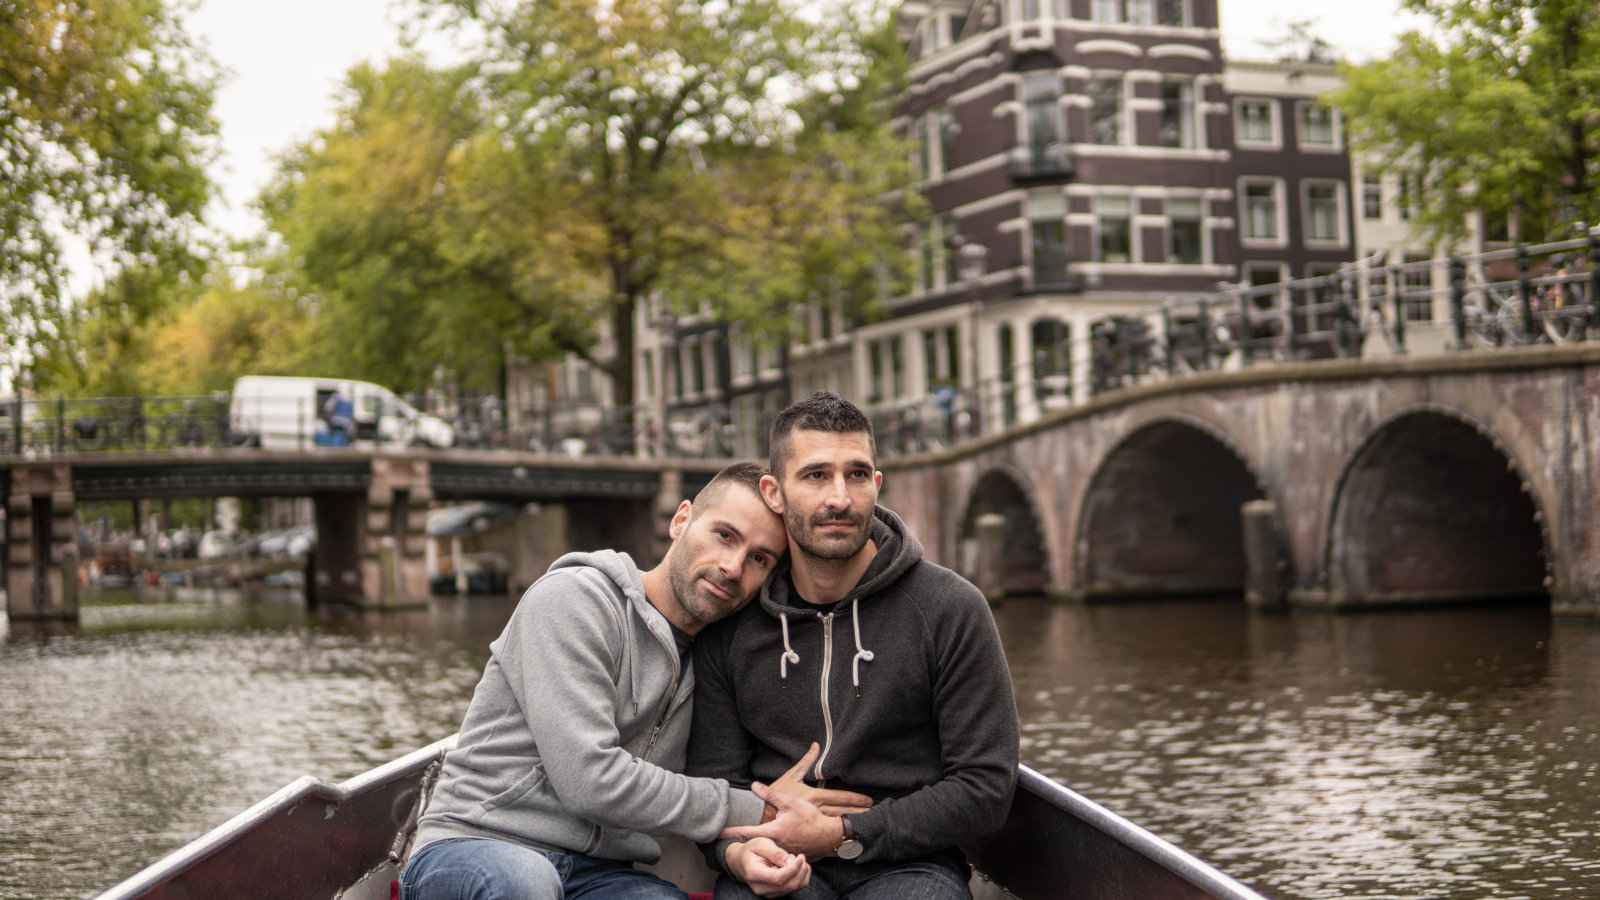 Gay Amsterdam Travel Guide 2021: gay bars, clubs, hotels & awesome things to do